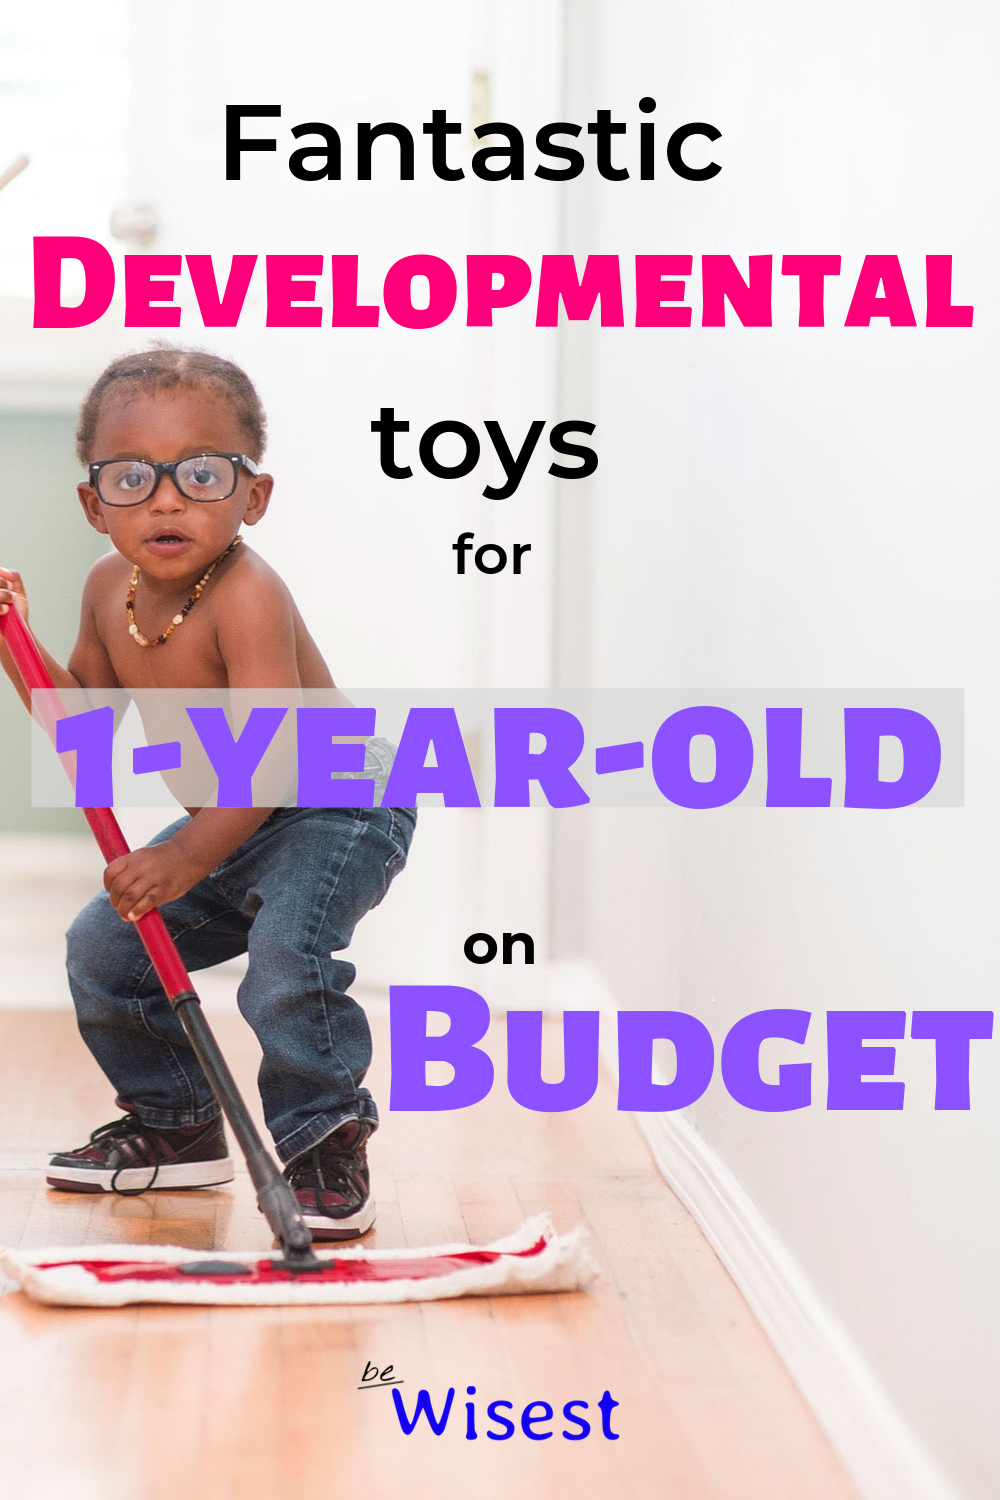 Fantastic developmental toys for 1-year-old on budget ...